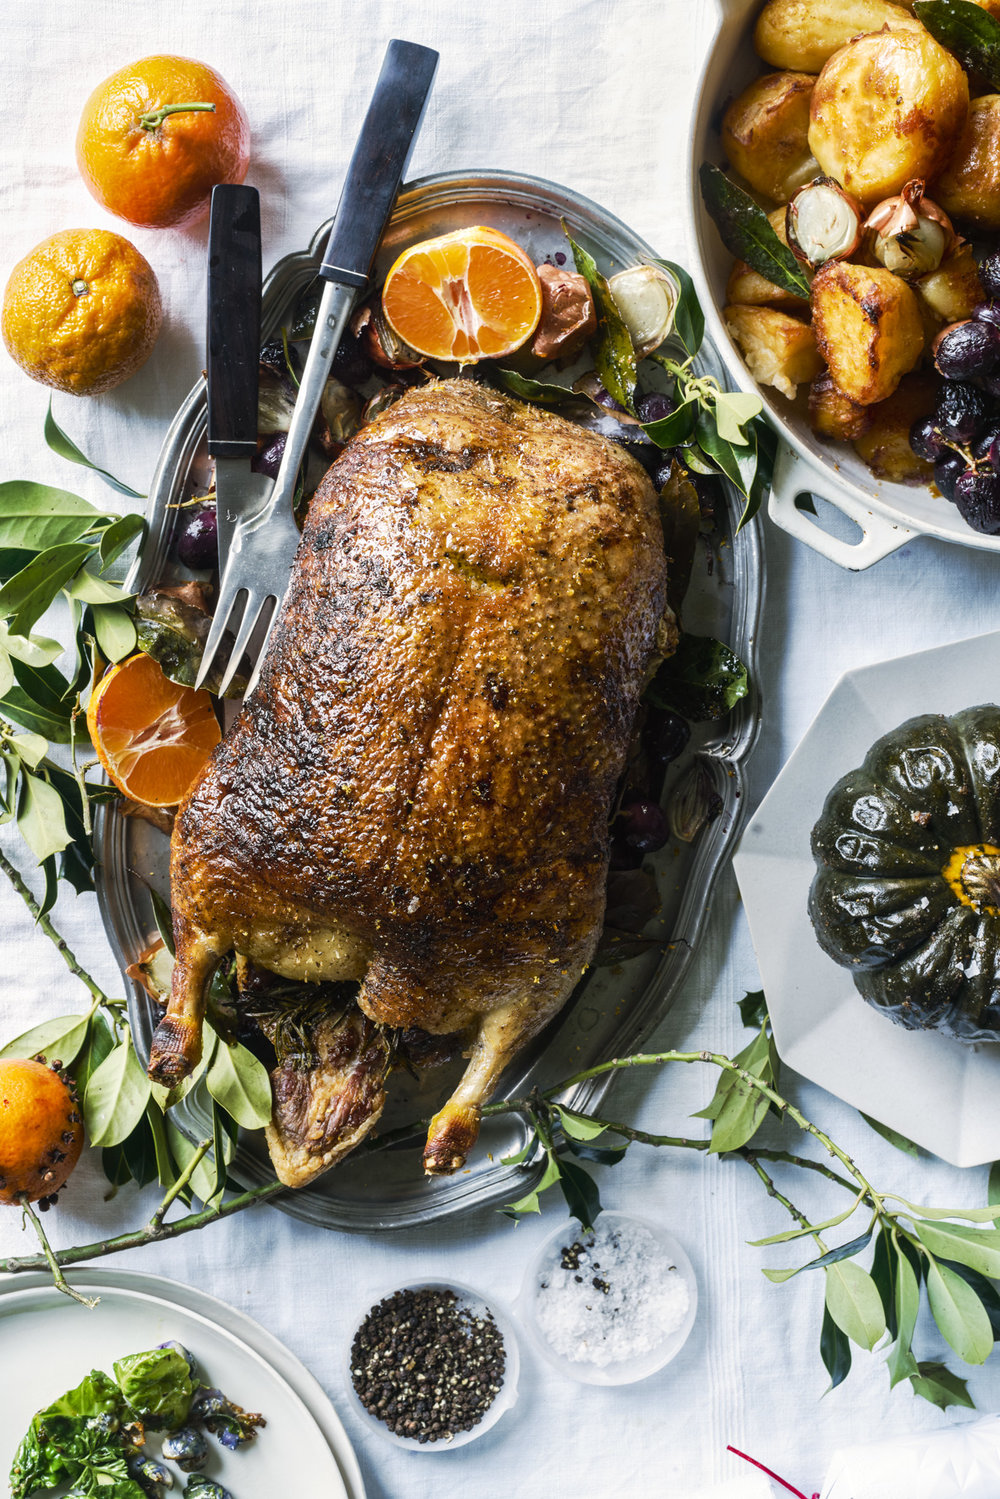 Roast Rosemary and orange roasted duck with duck fat confit & roasted potatoes